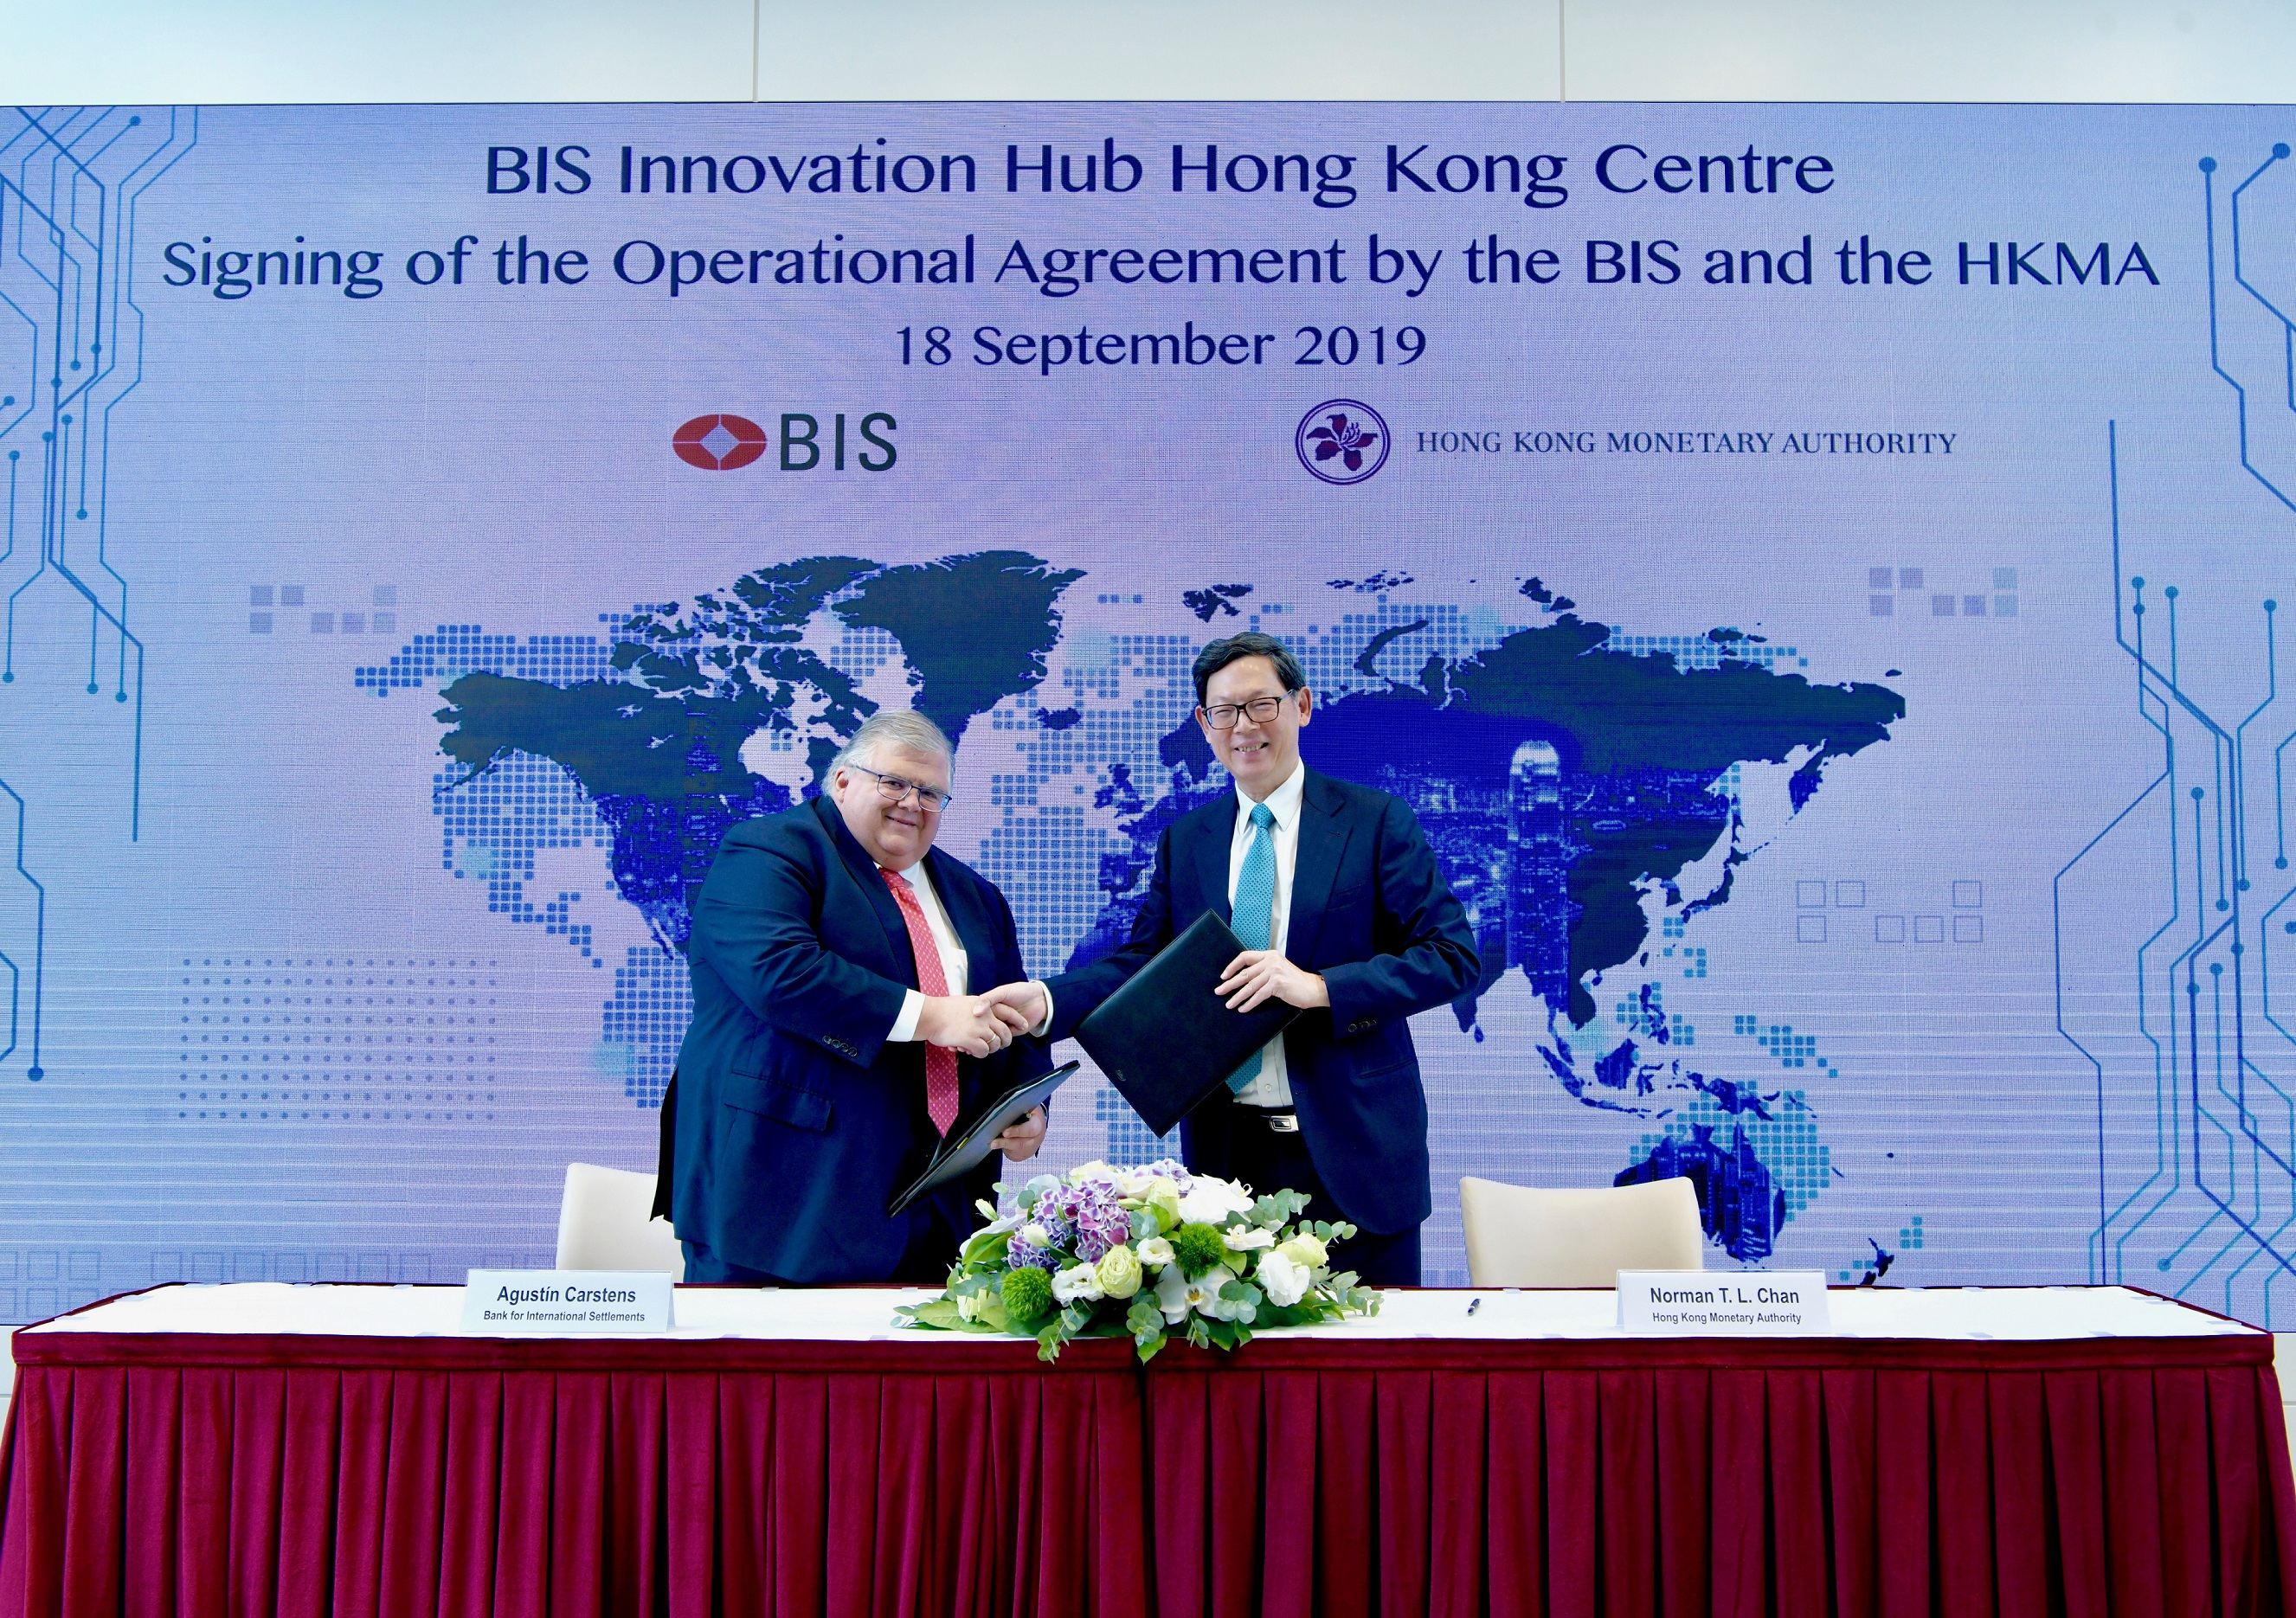 Agustín Carstens, General Manager of the BIS (left) and Norman Chan, Chief Executive of the HKMA, signed the Operational Agreement, formally marking the cooperation between the BIS and the HKMA on the BIS Innovation Hub Centre in Hong Kong.